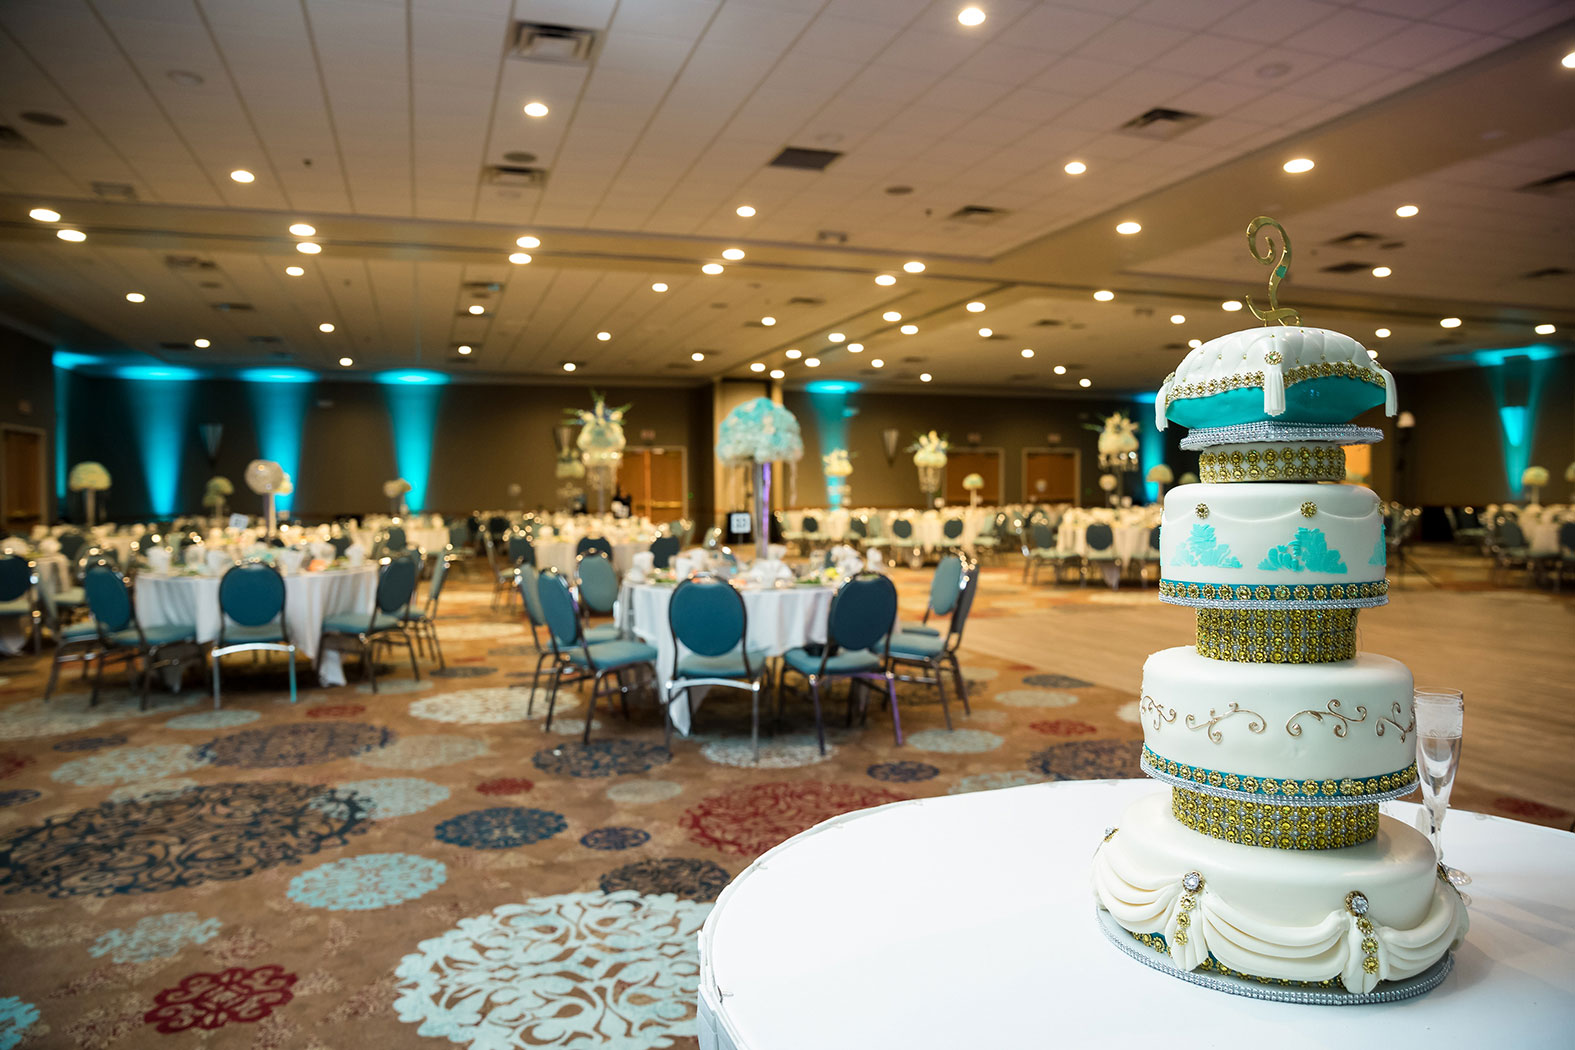 wedding reception set up with decorations and a four tier wedding cake